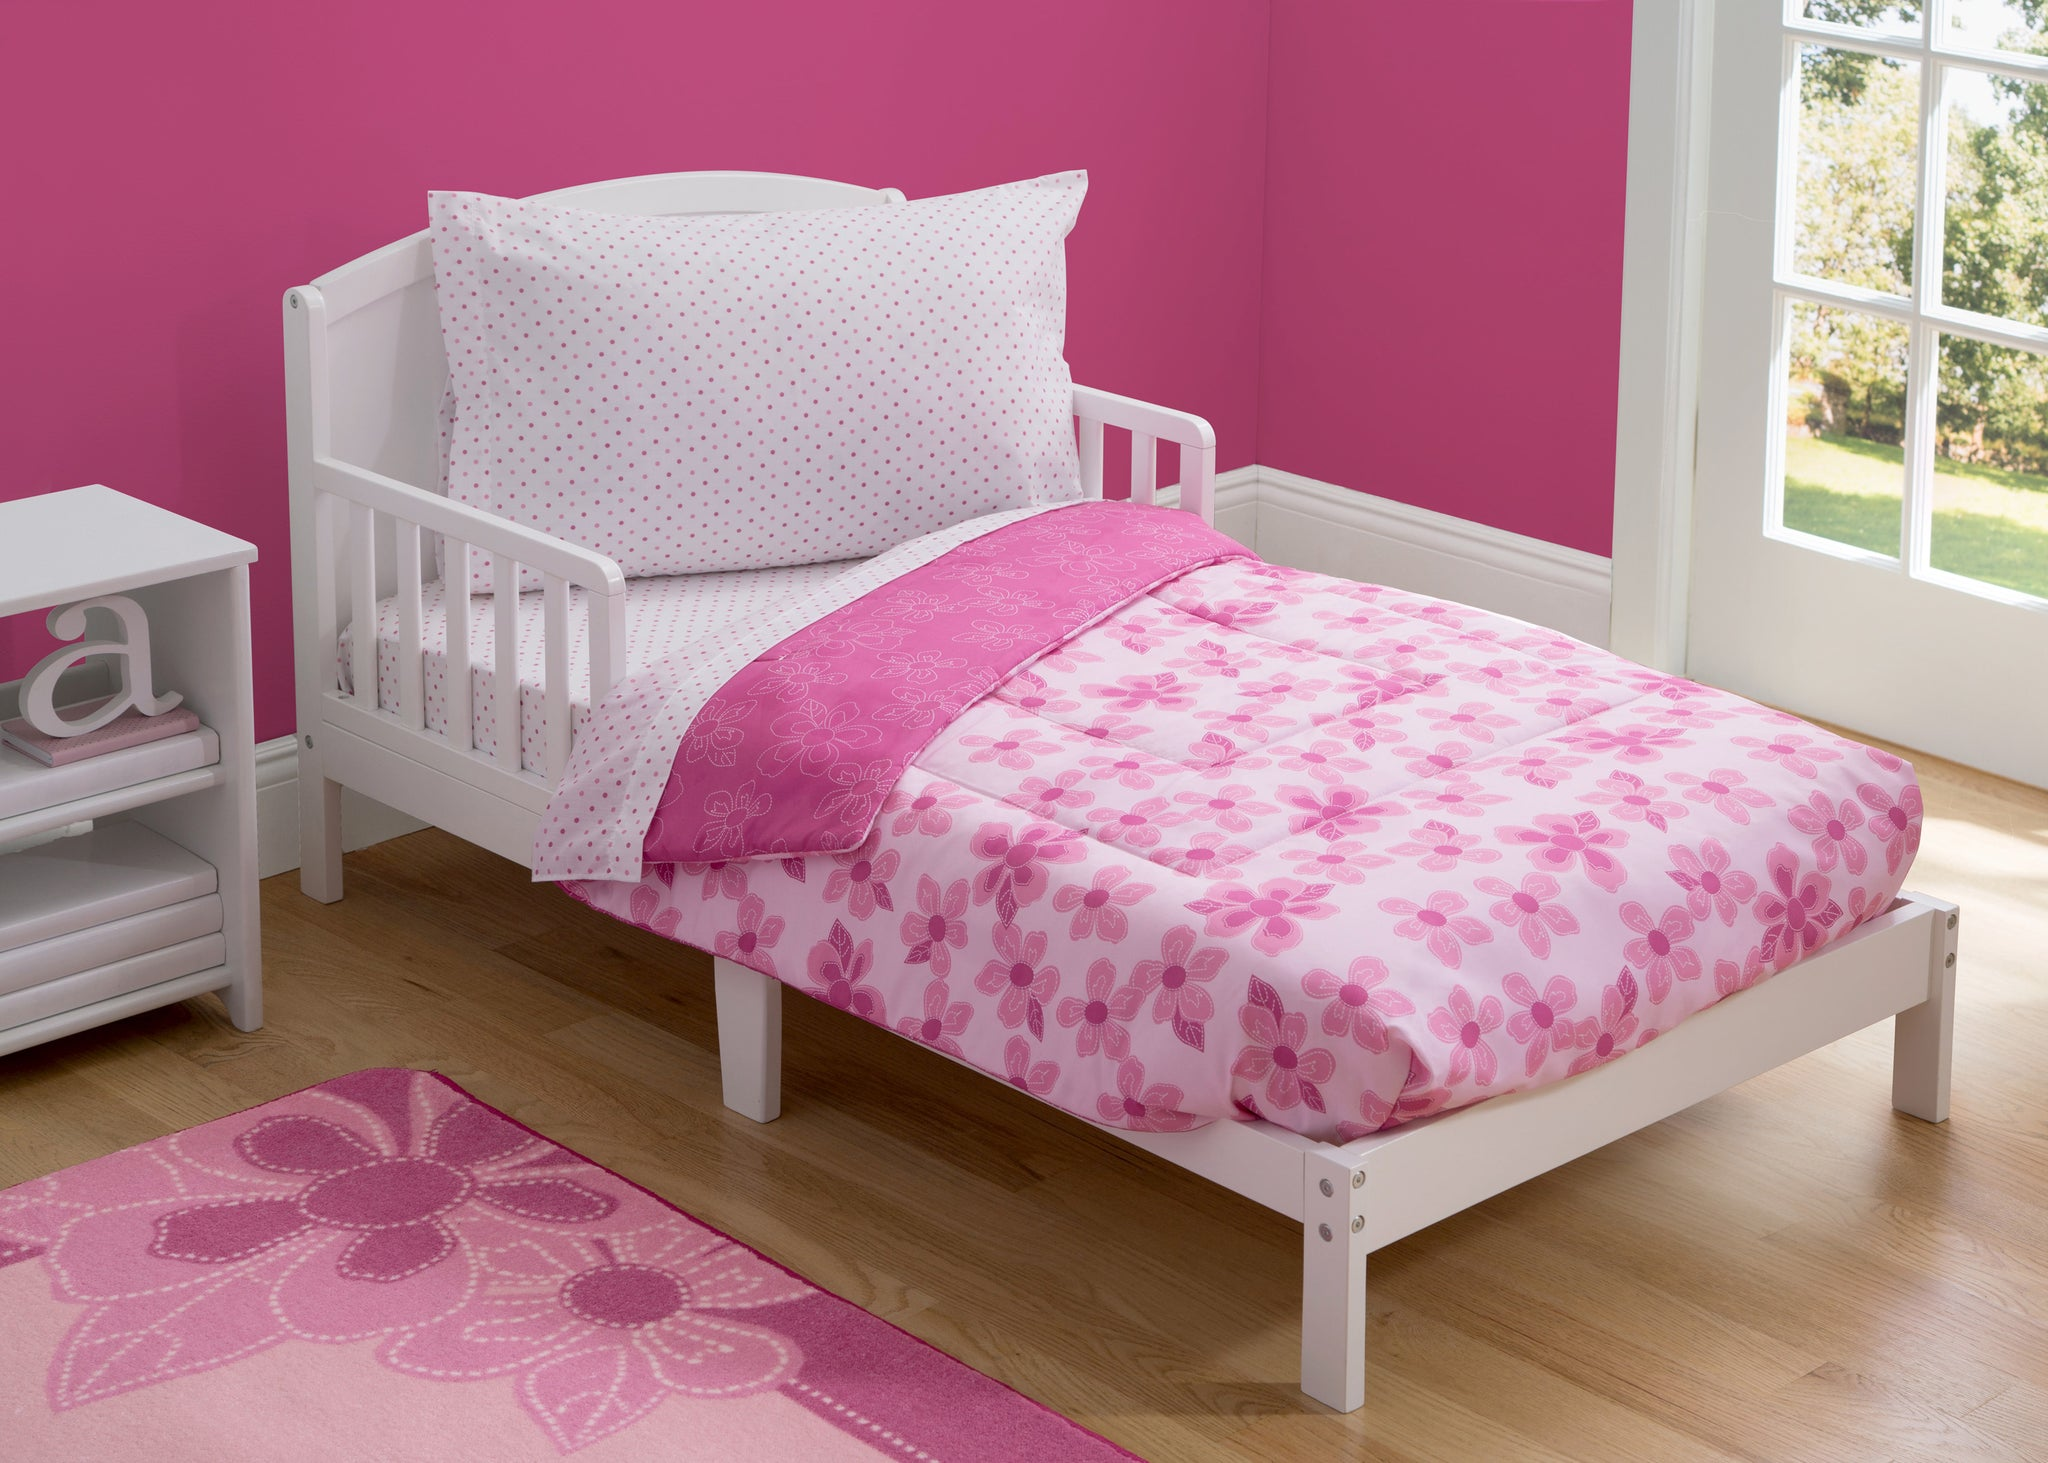 Girl 4-Piece Toddler Bedding Set, Floral and Polka Dot (2000) a1a